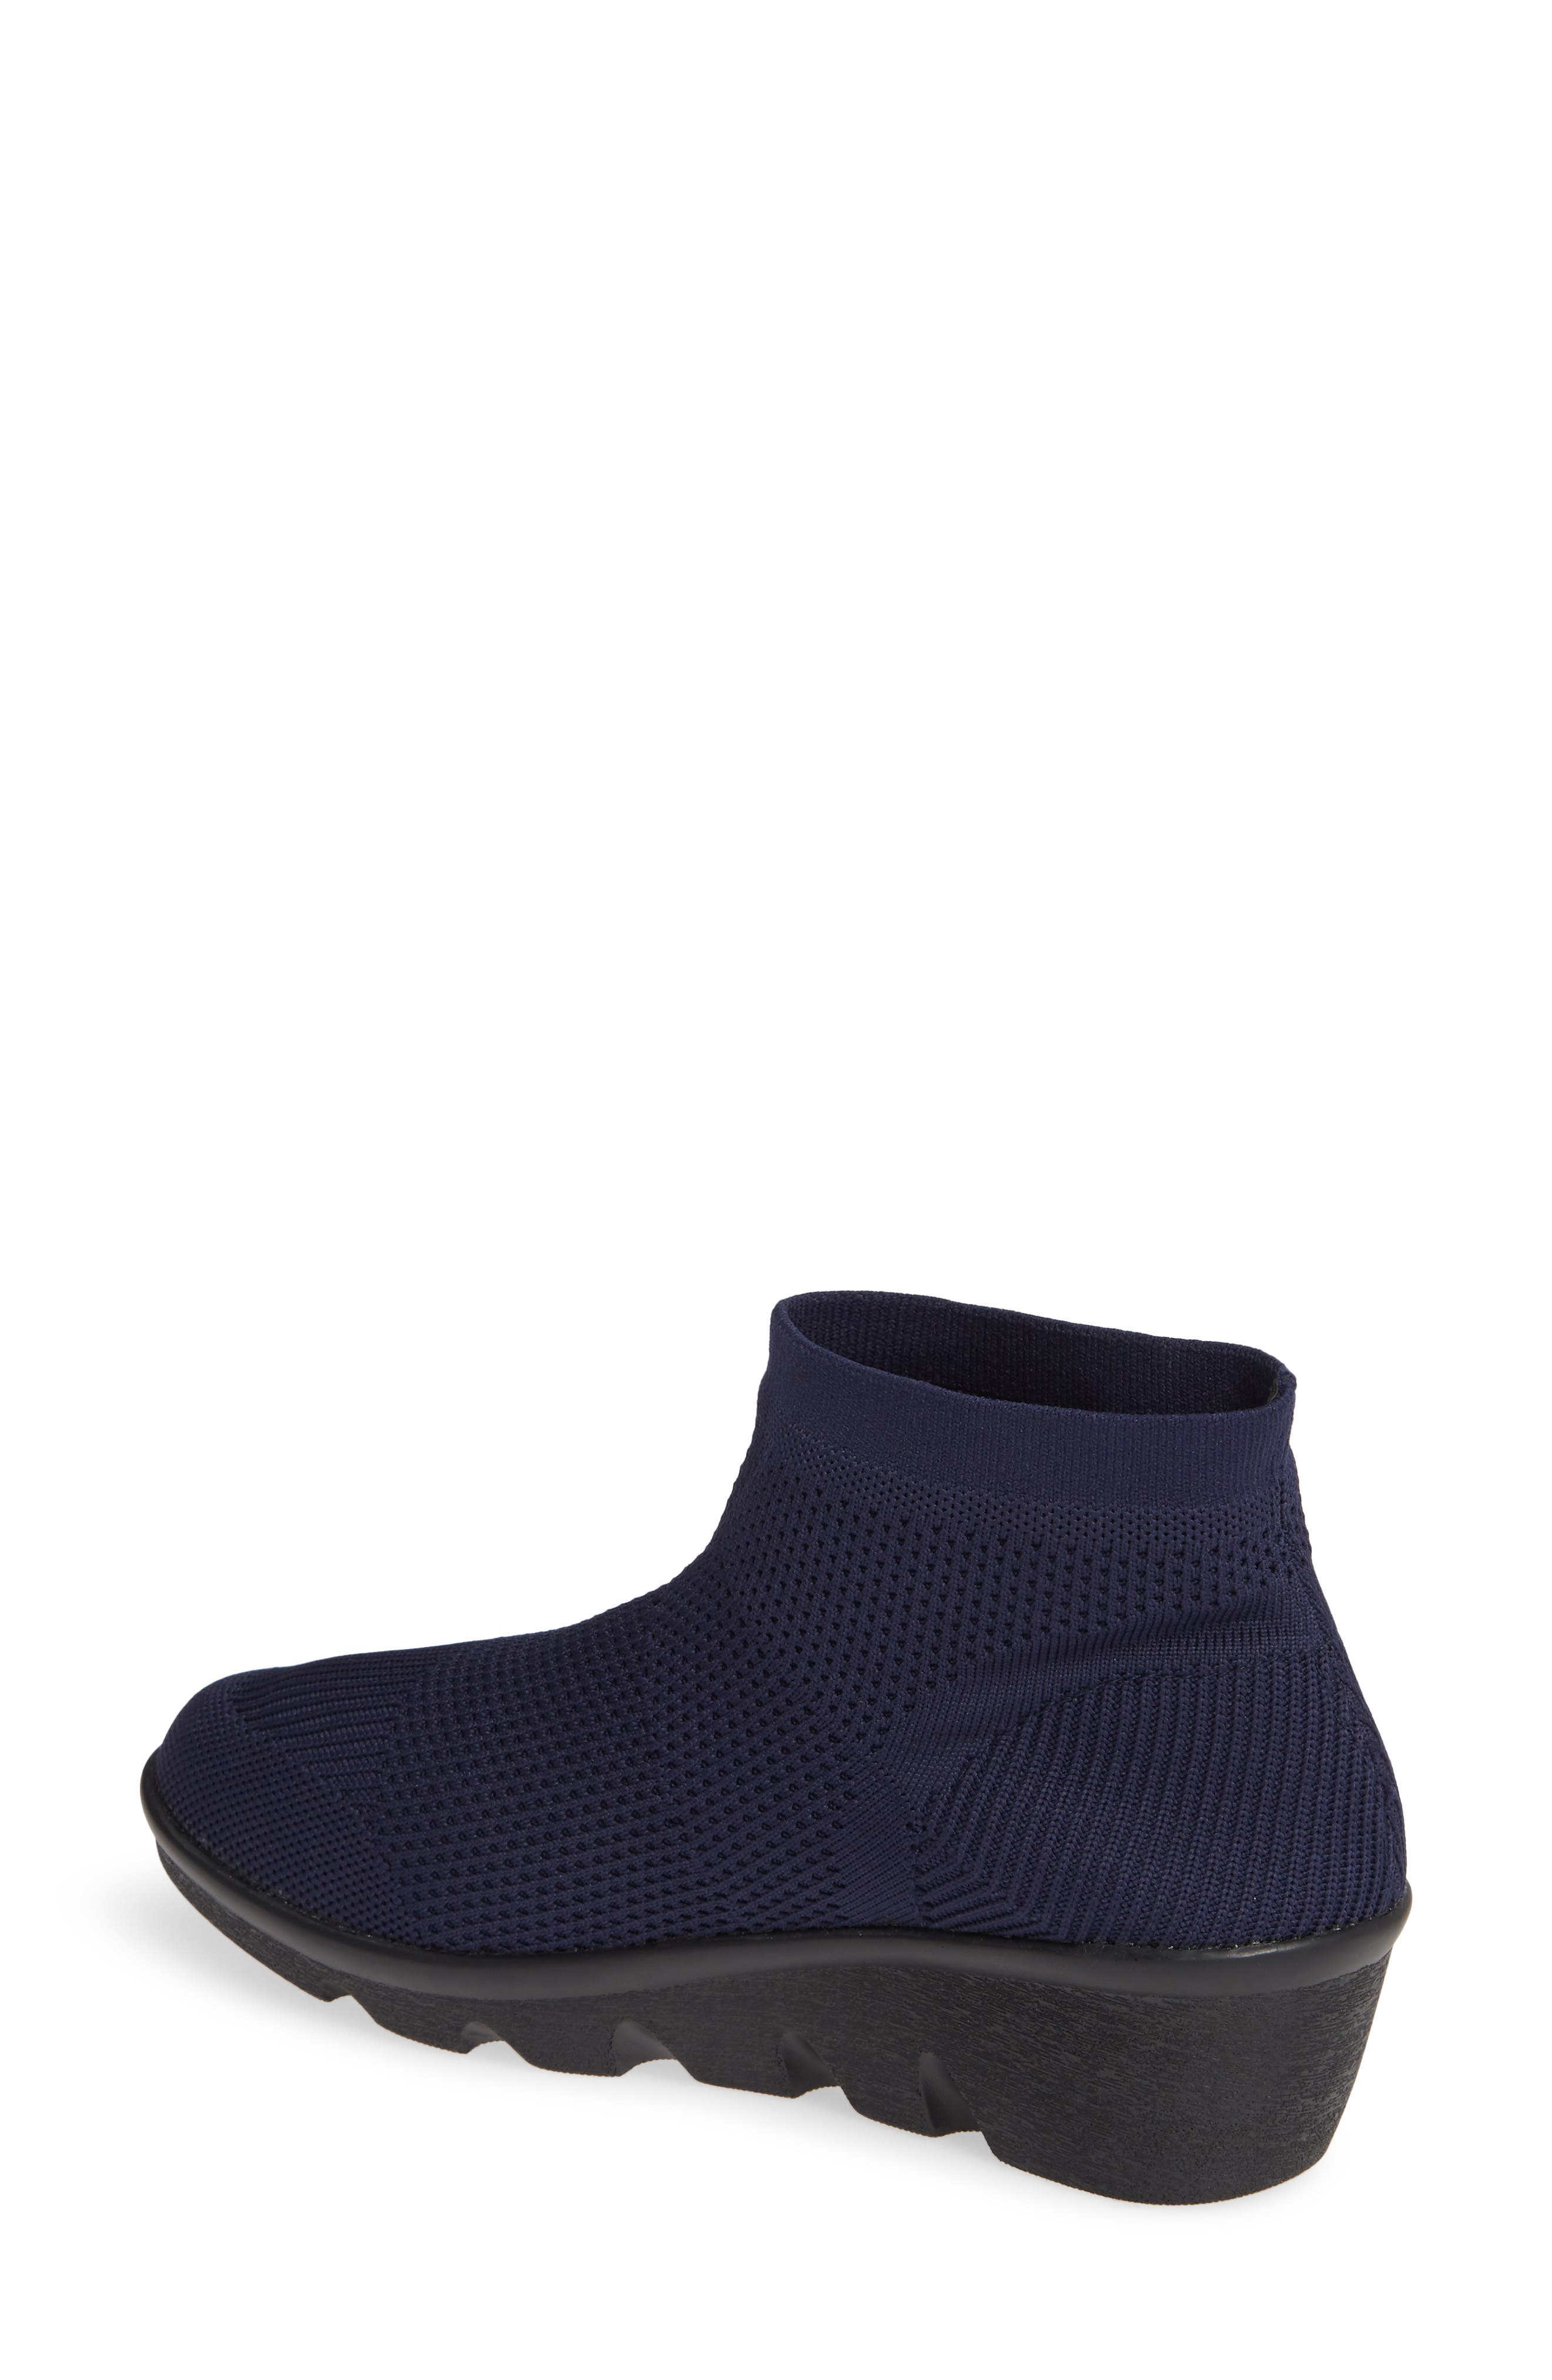 BERNIE MEV., Camryn Knit Bootie, Alternate thumbnail 2, color, NAVY FABRIC